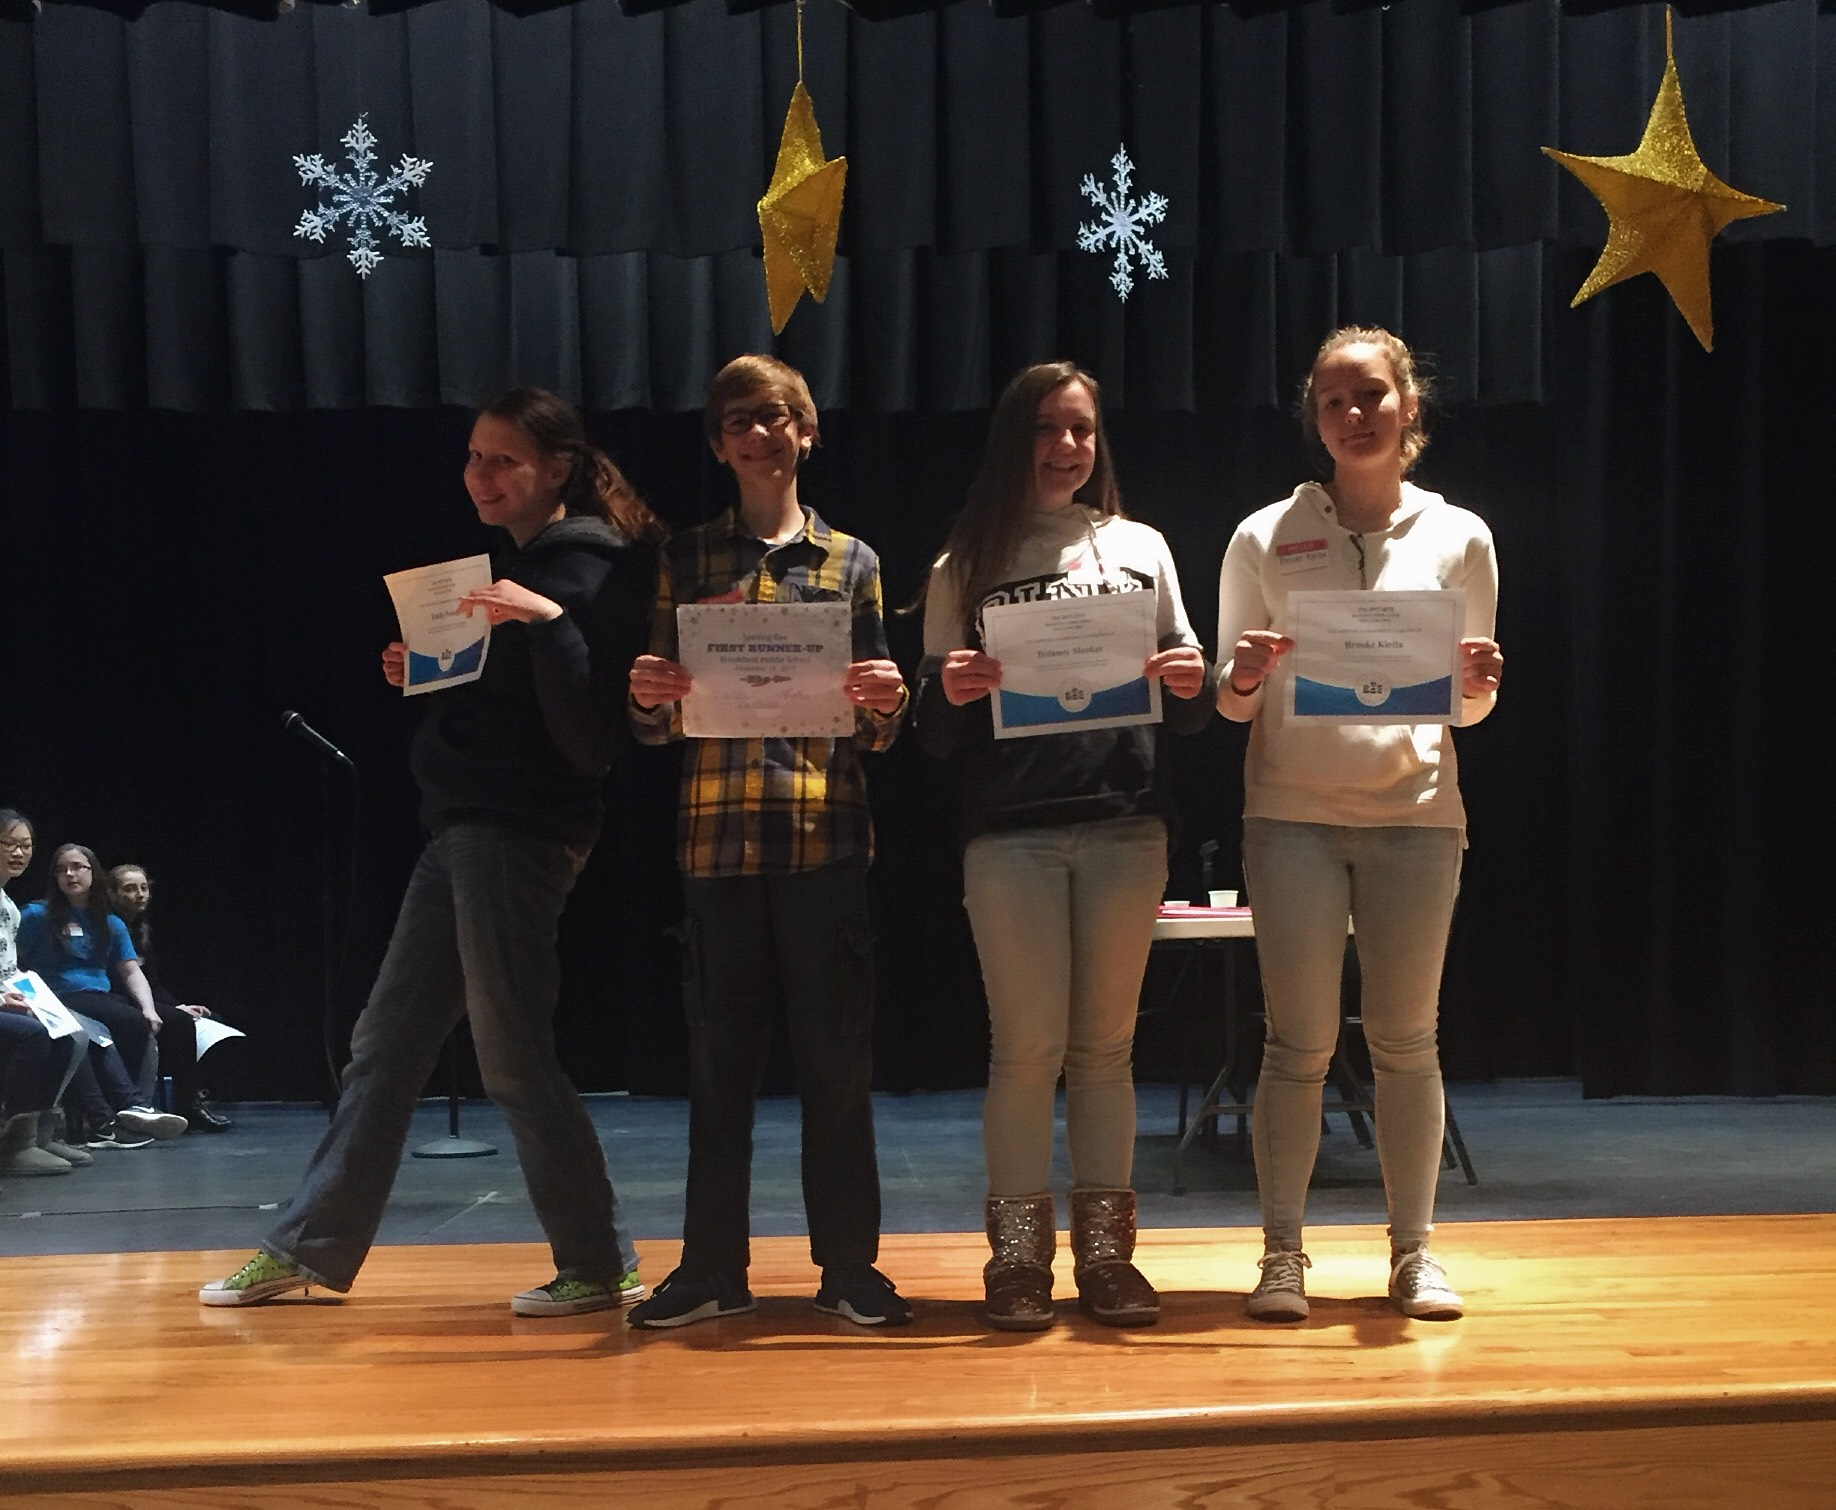 eighth grade spelling bee participants